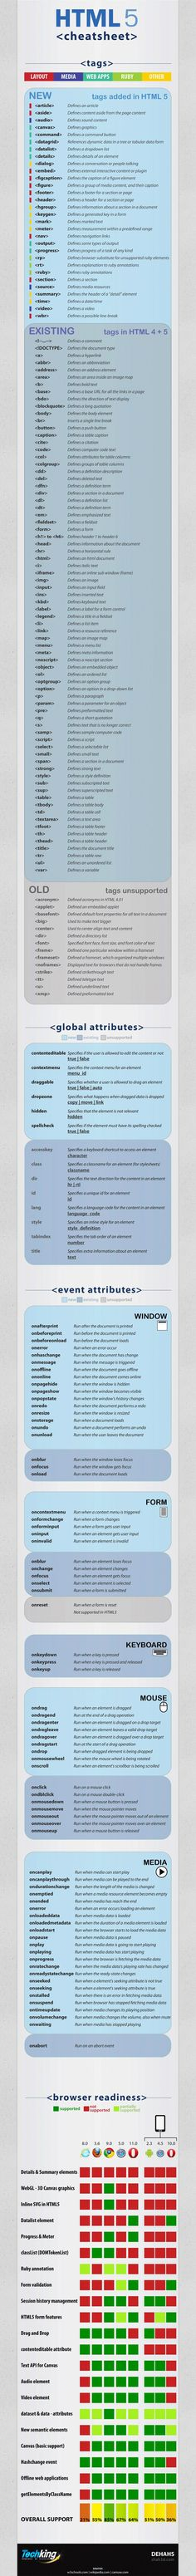 A little HTML knowledge goes a long way #Infographics www.socialmediamamma.com